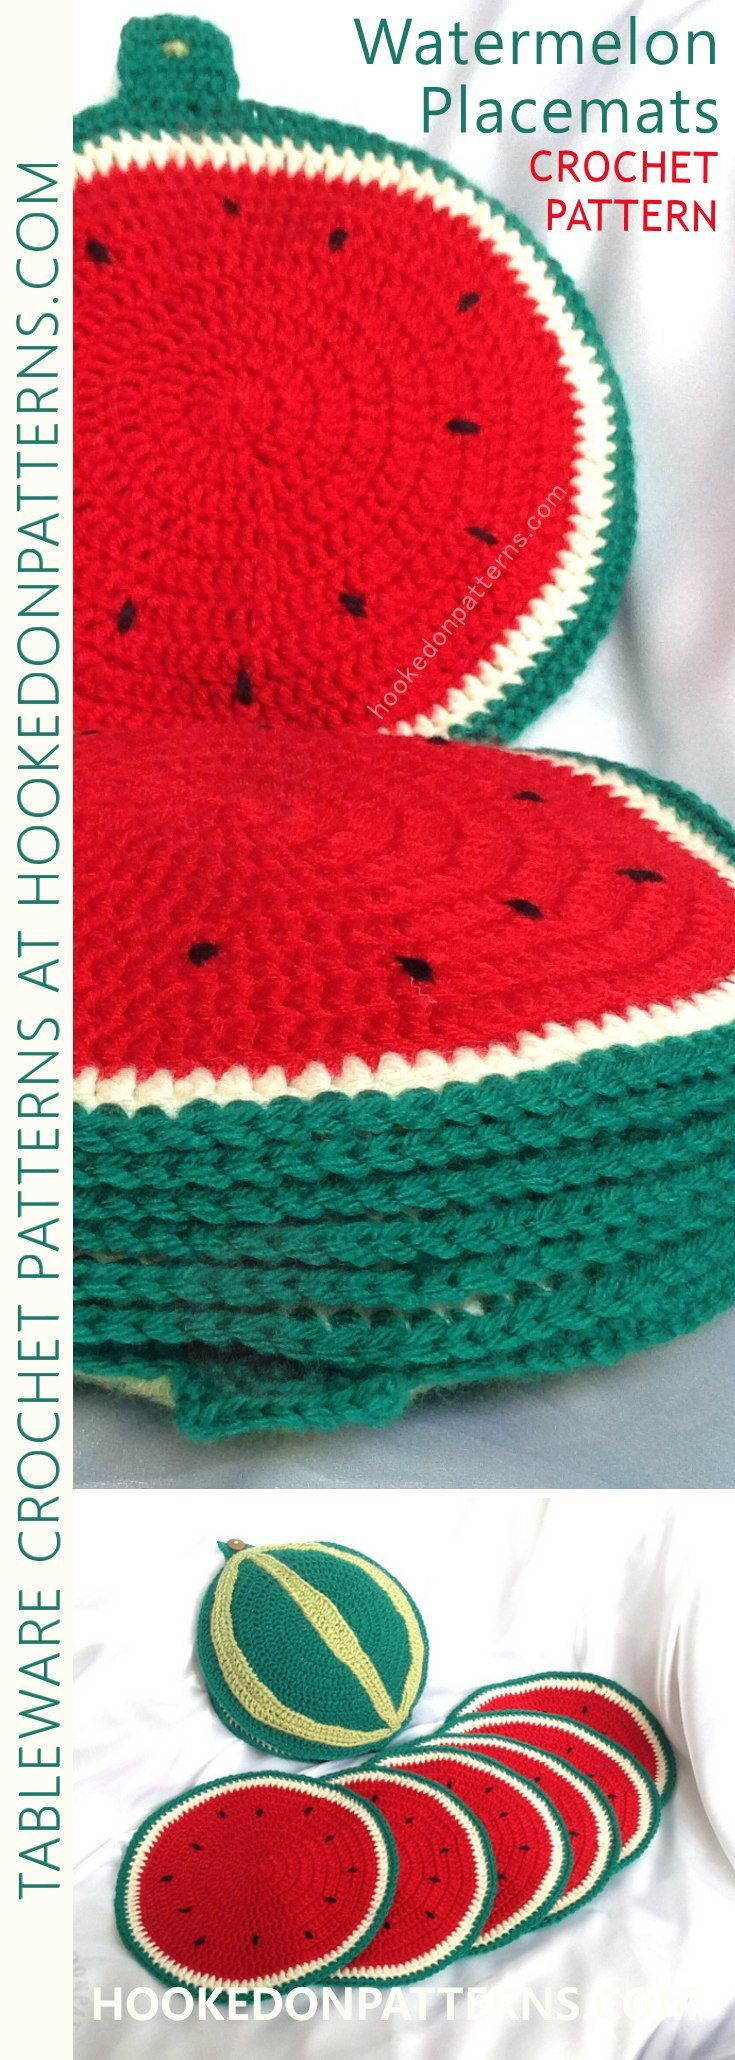 Watermelon Placemats Crochet Pattern - Table Crochet from Ling Ryan ...